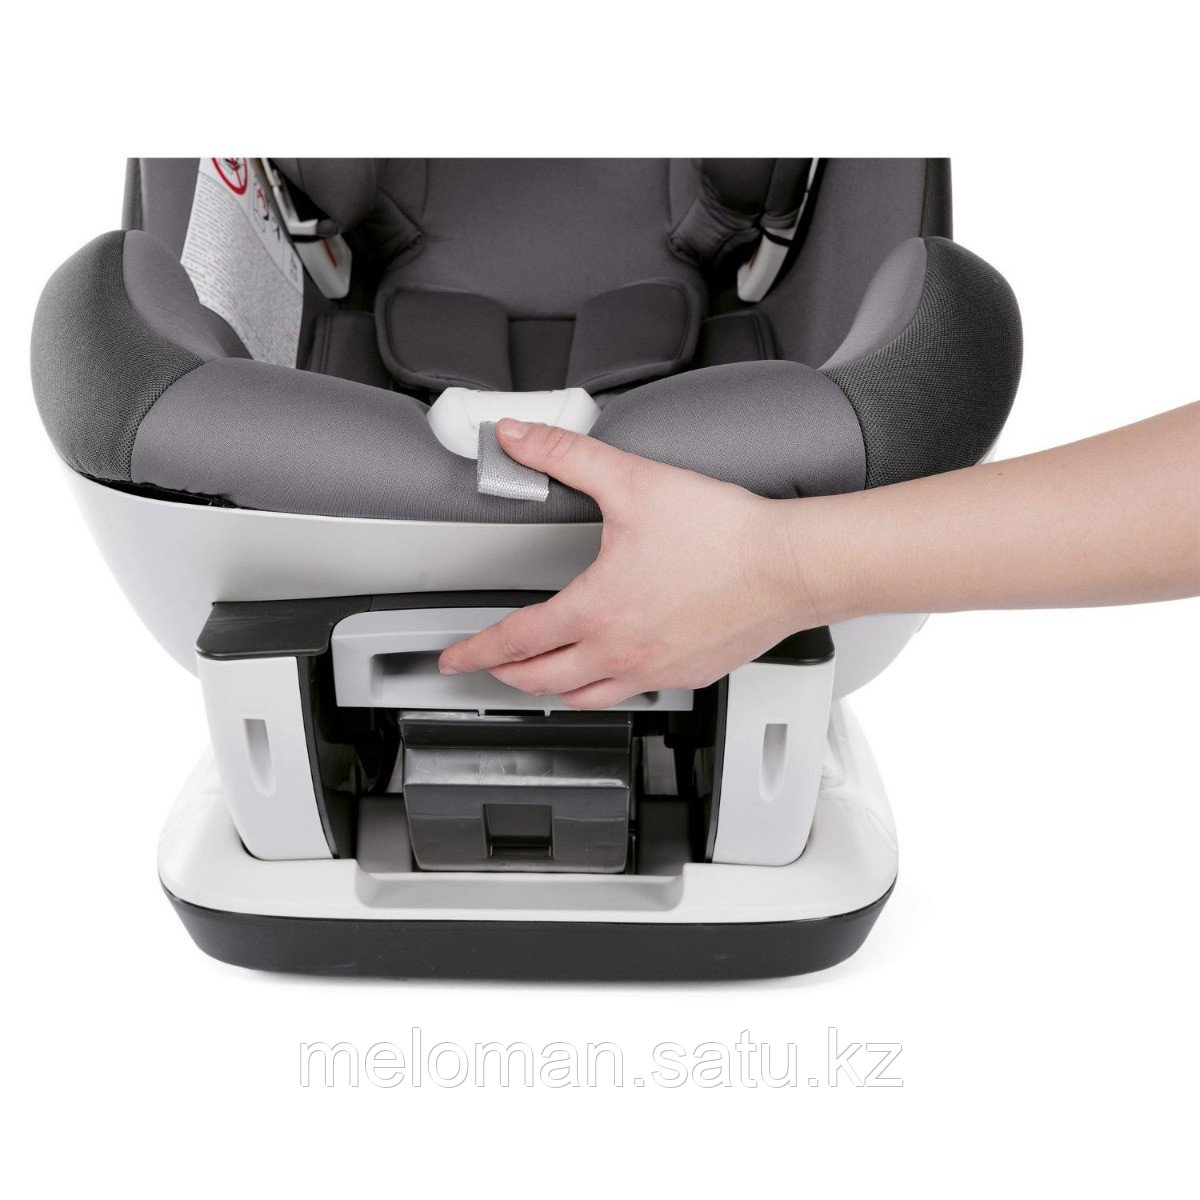 Chicco: Автокресло Seat Up 012 Pearl (0-25 kg) 0+ - фото 10